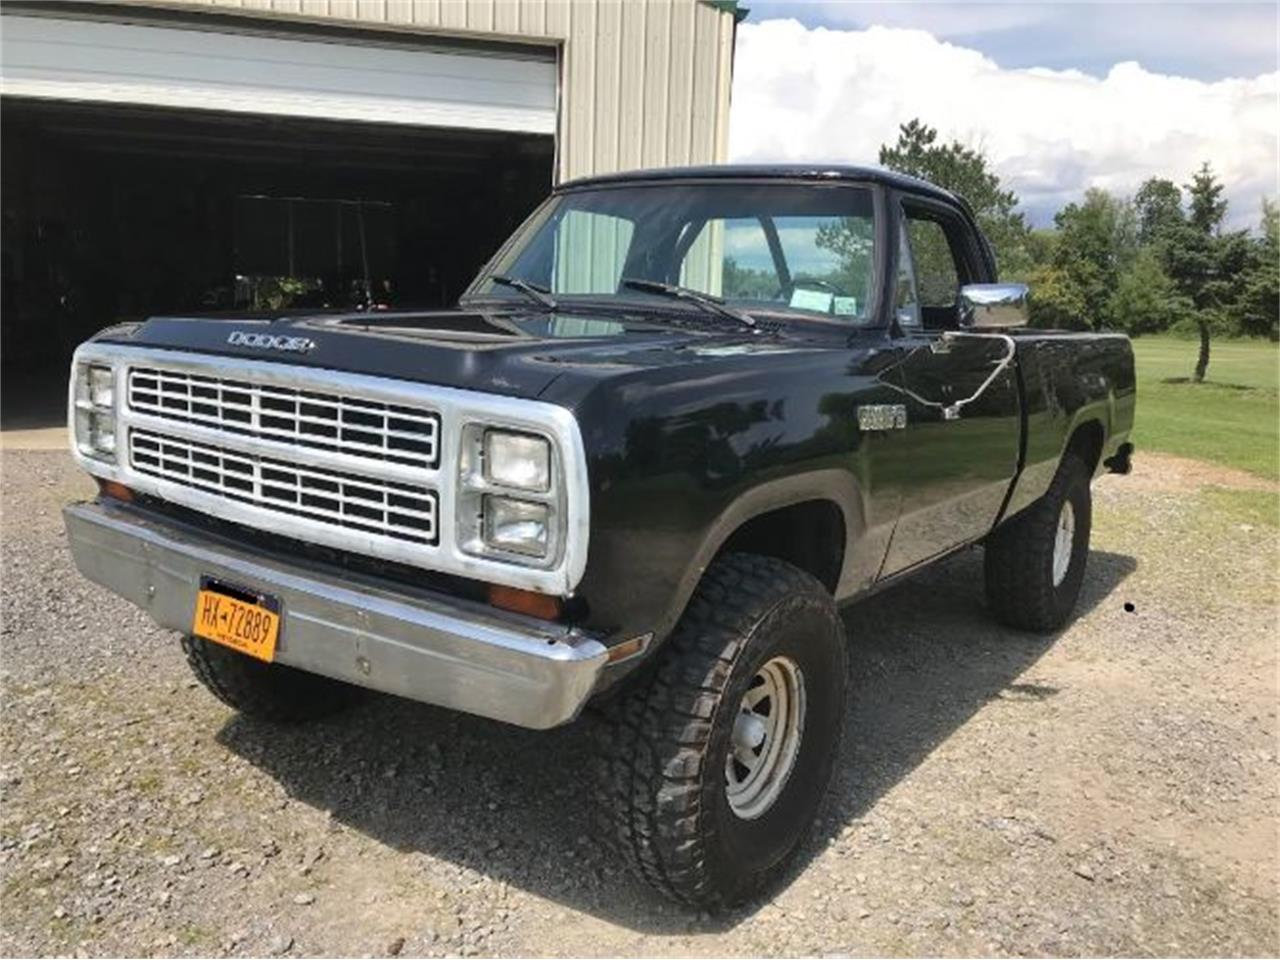 Large Picture of '79 Dodge Power Wagon located in Cadillac Michigan - $9,495.00 - QFJH